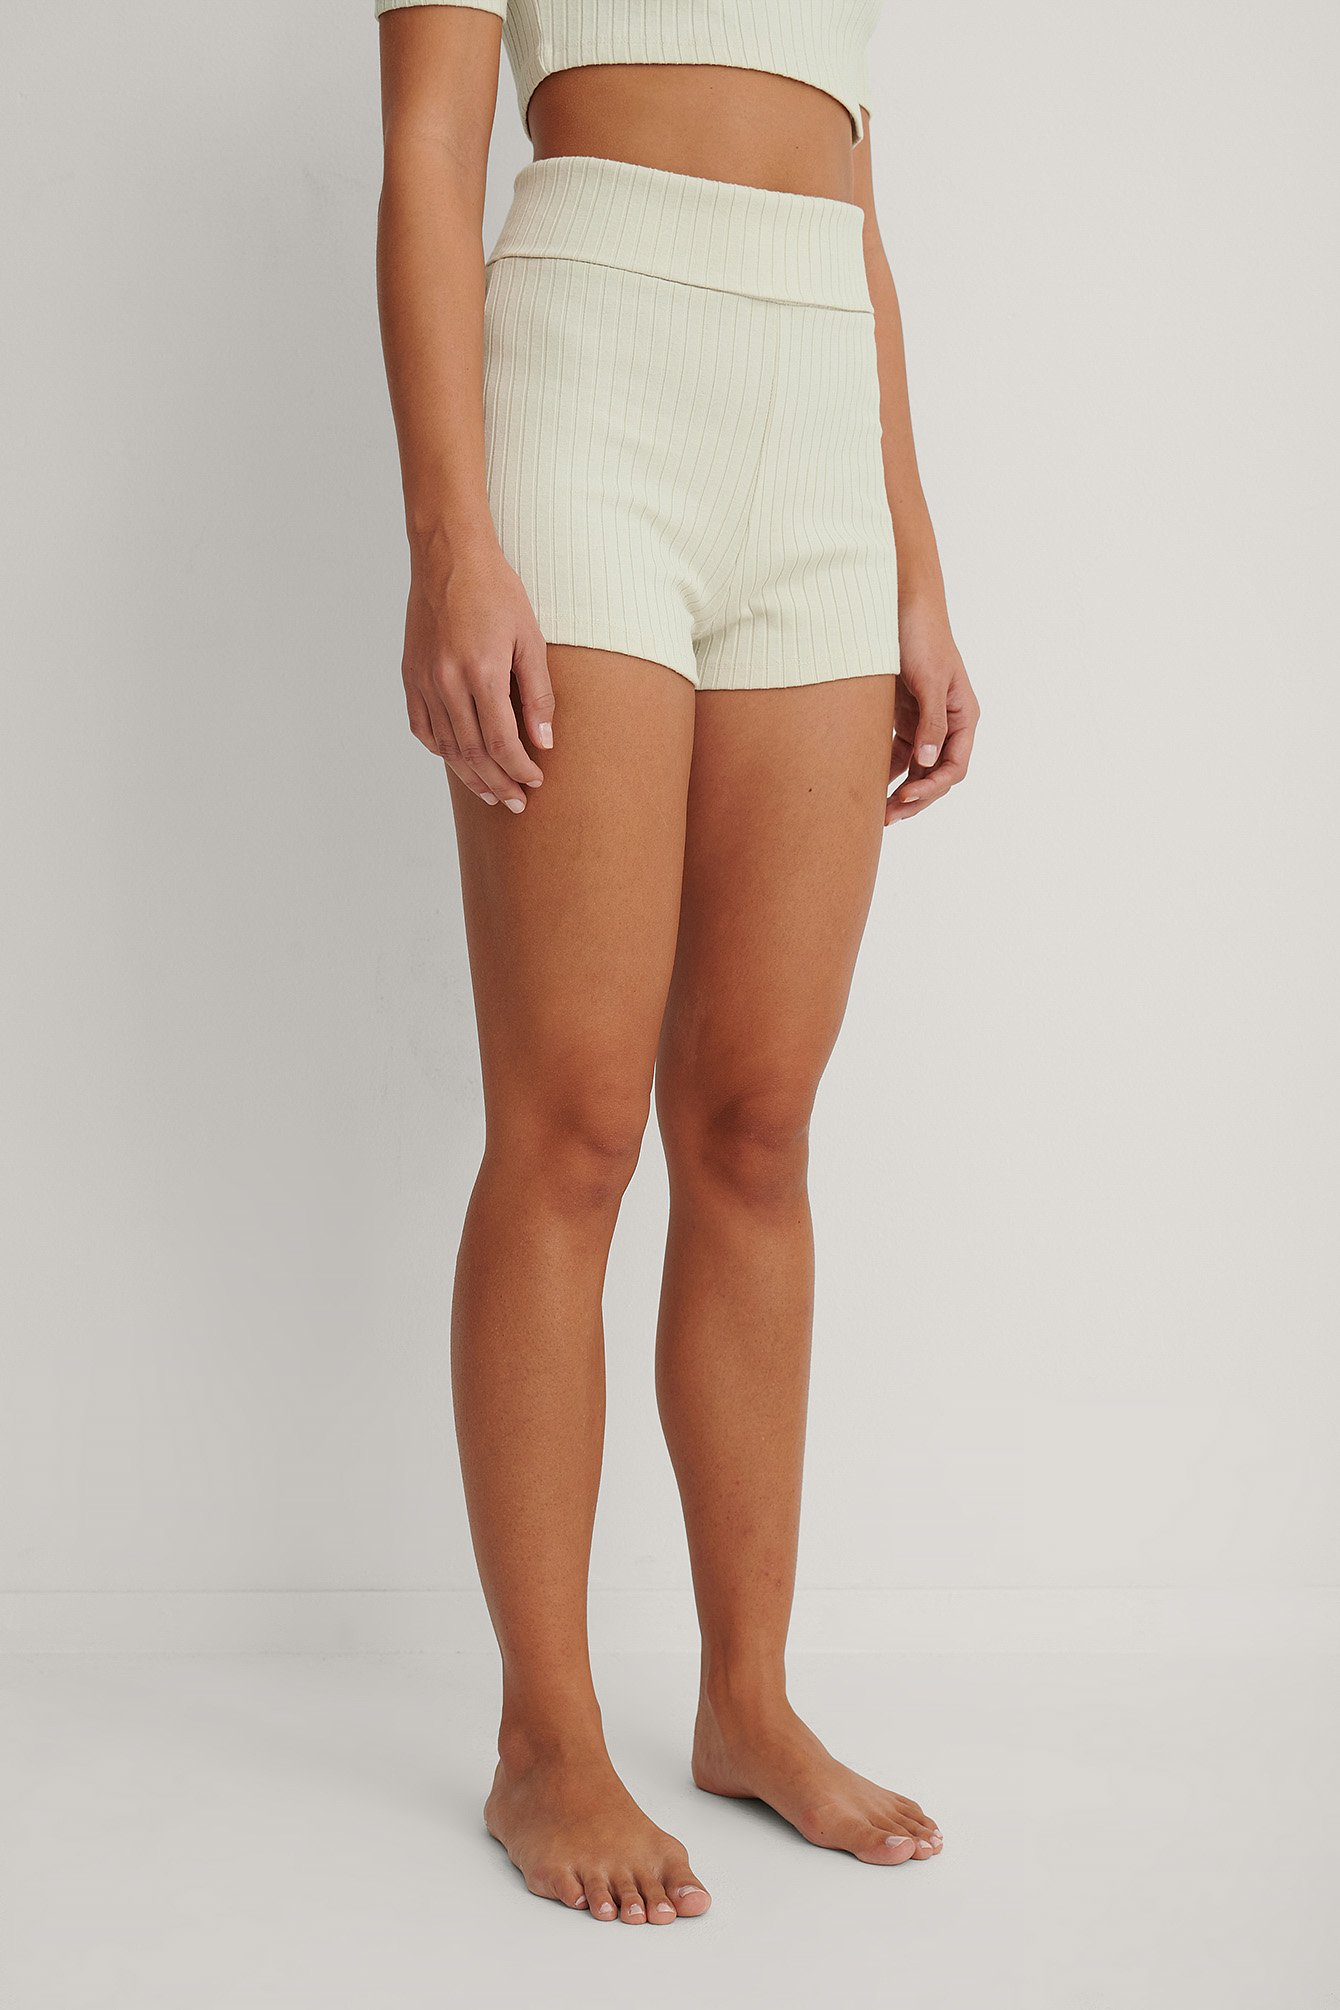 Dusty Light Beige Shorts Básicos Acanalados De Talle Alto